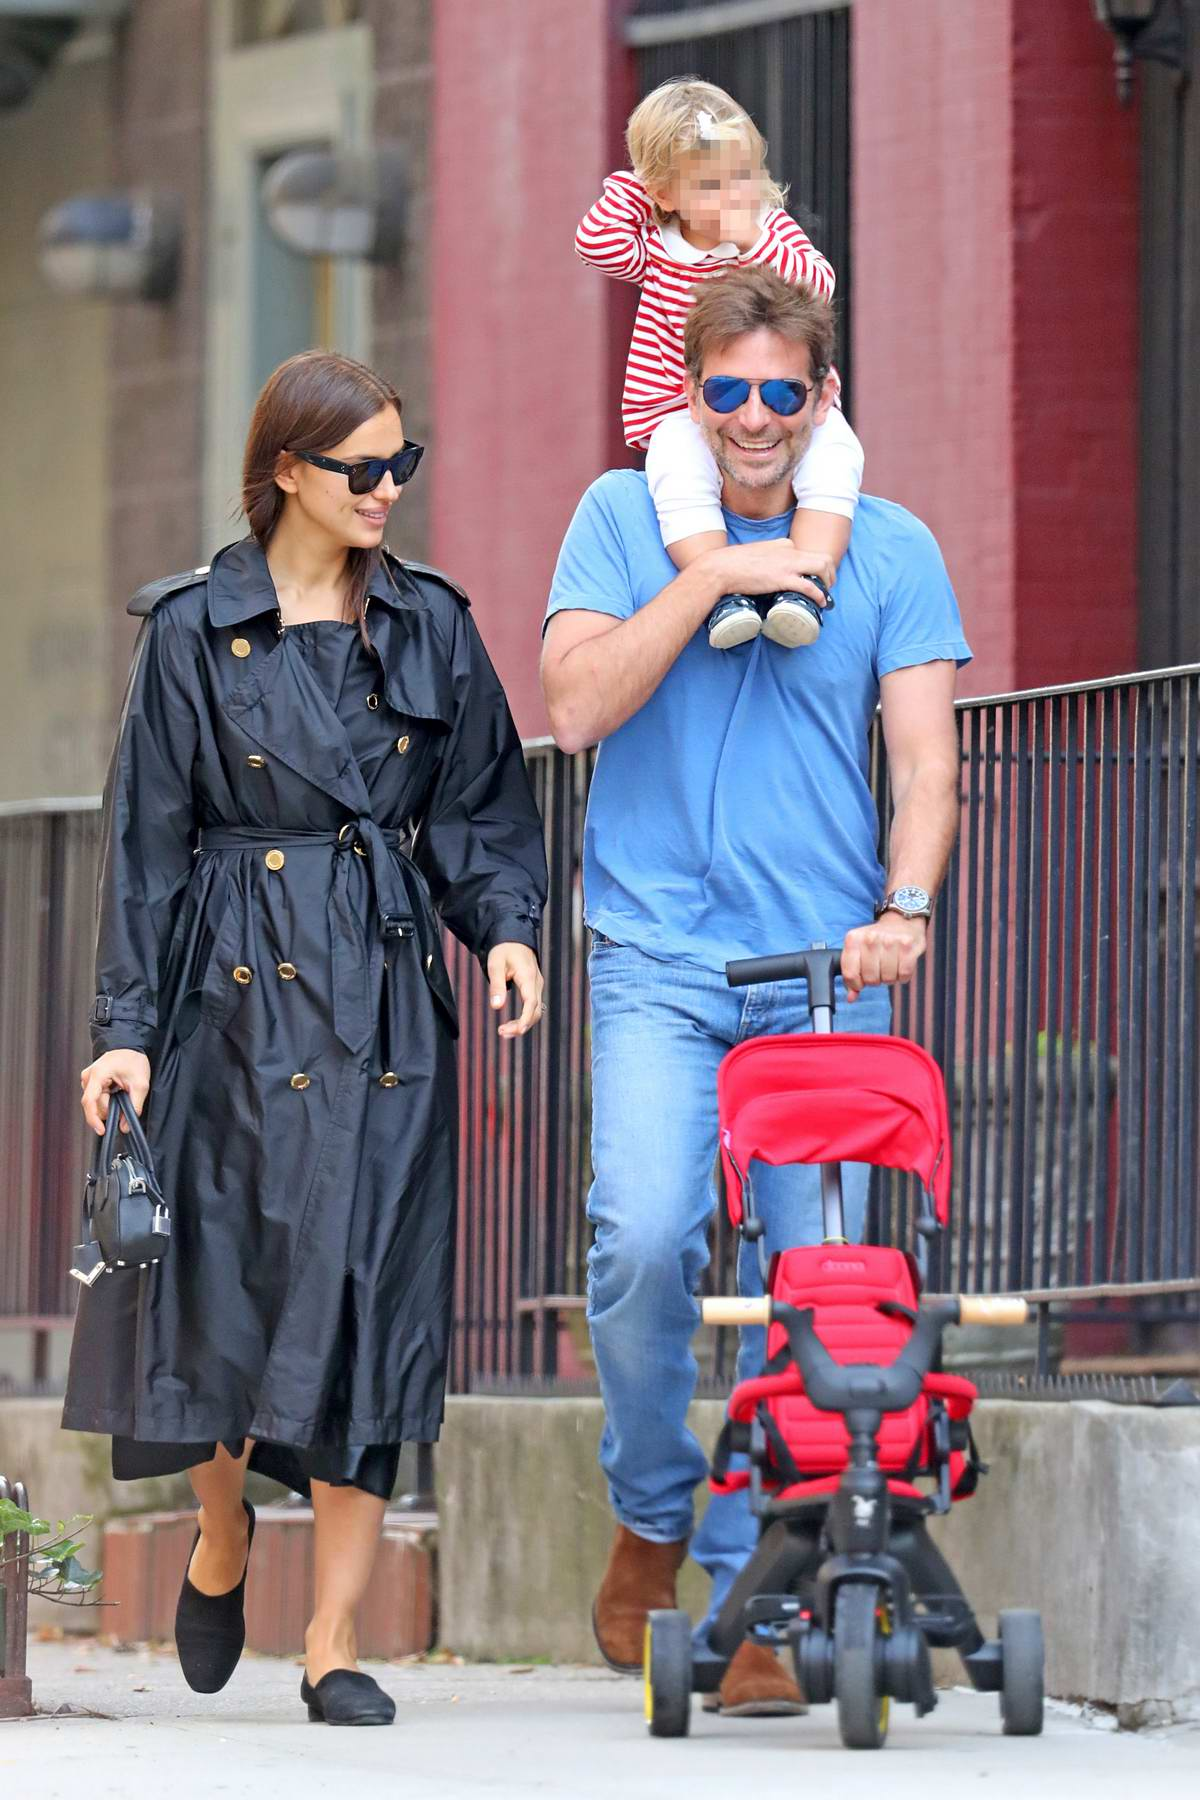 Irina Shayk and Bradley Cooper leaving Cafe Cluny after brunch with their daughter, New York City